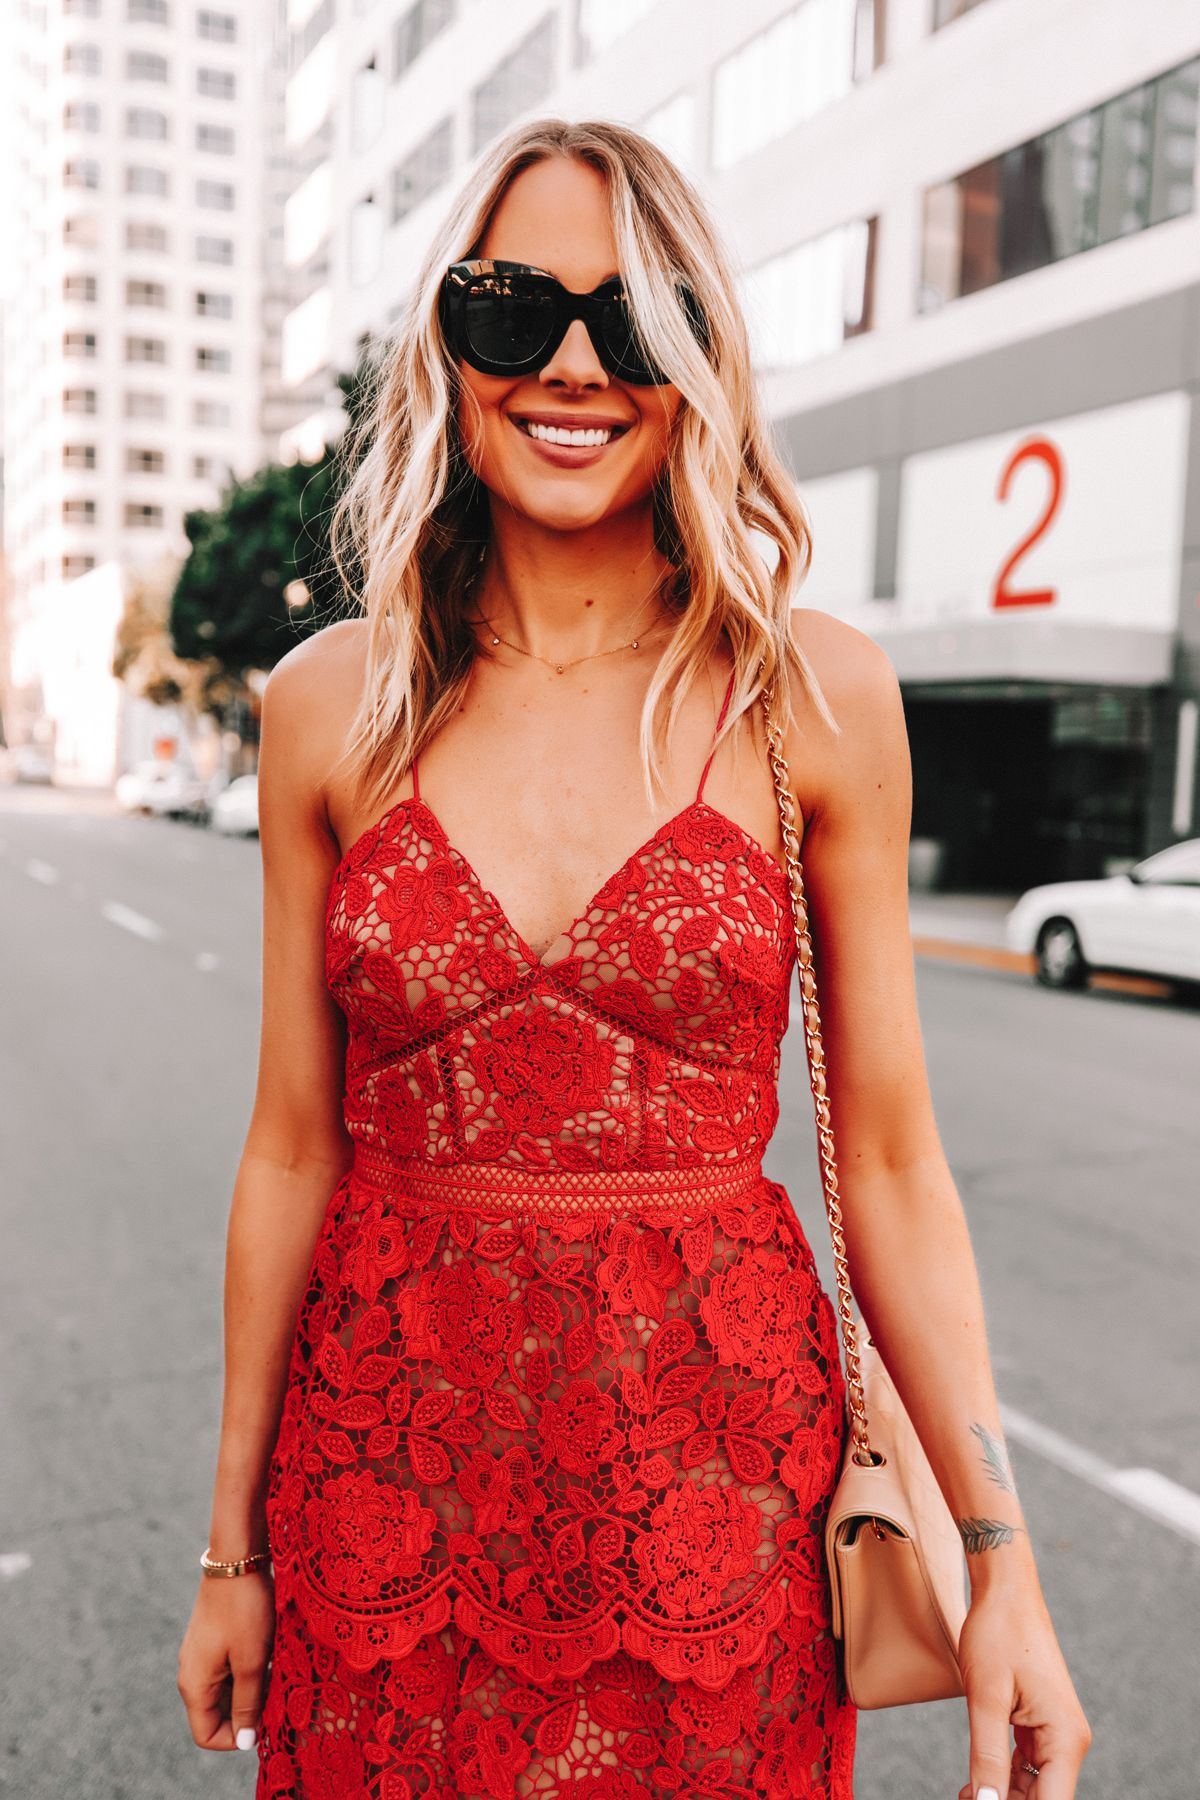 Spring Wedding Guest Spring Wedding What To Wear To A Wedding Cocktail Dress Self P Spring Wedding Guest Attire Wedding Guest Outfit Spring Fashion Jackson [ 1800 x 1200 Pixel ]